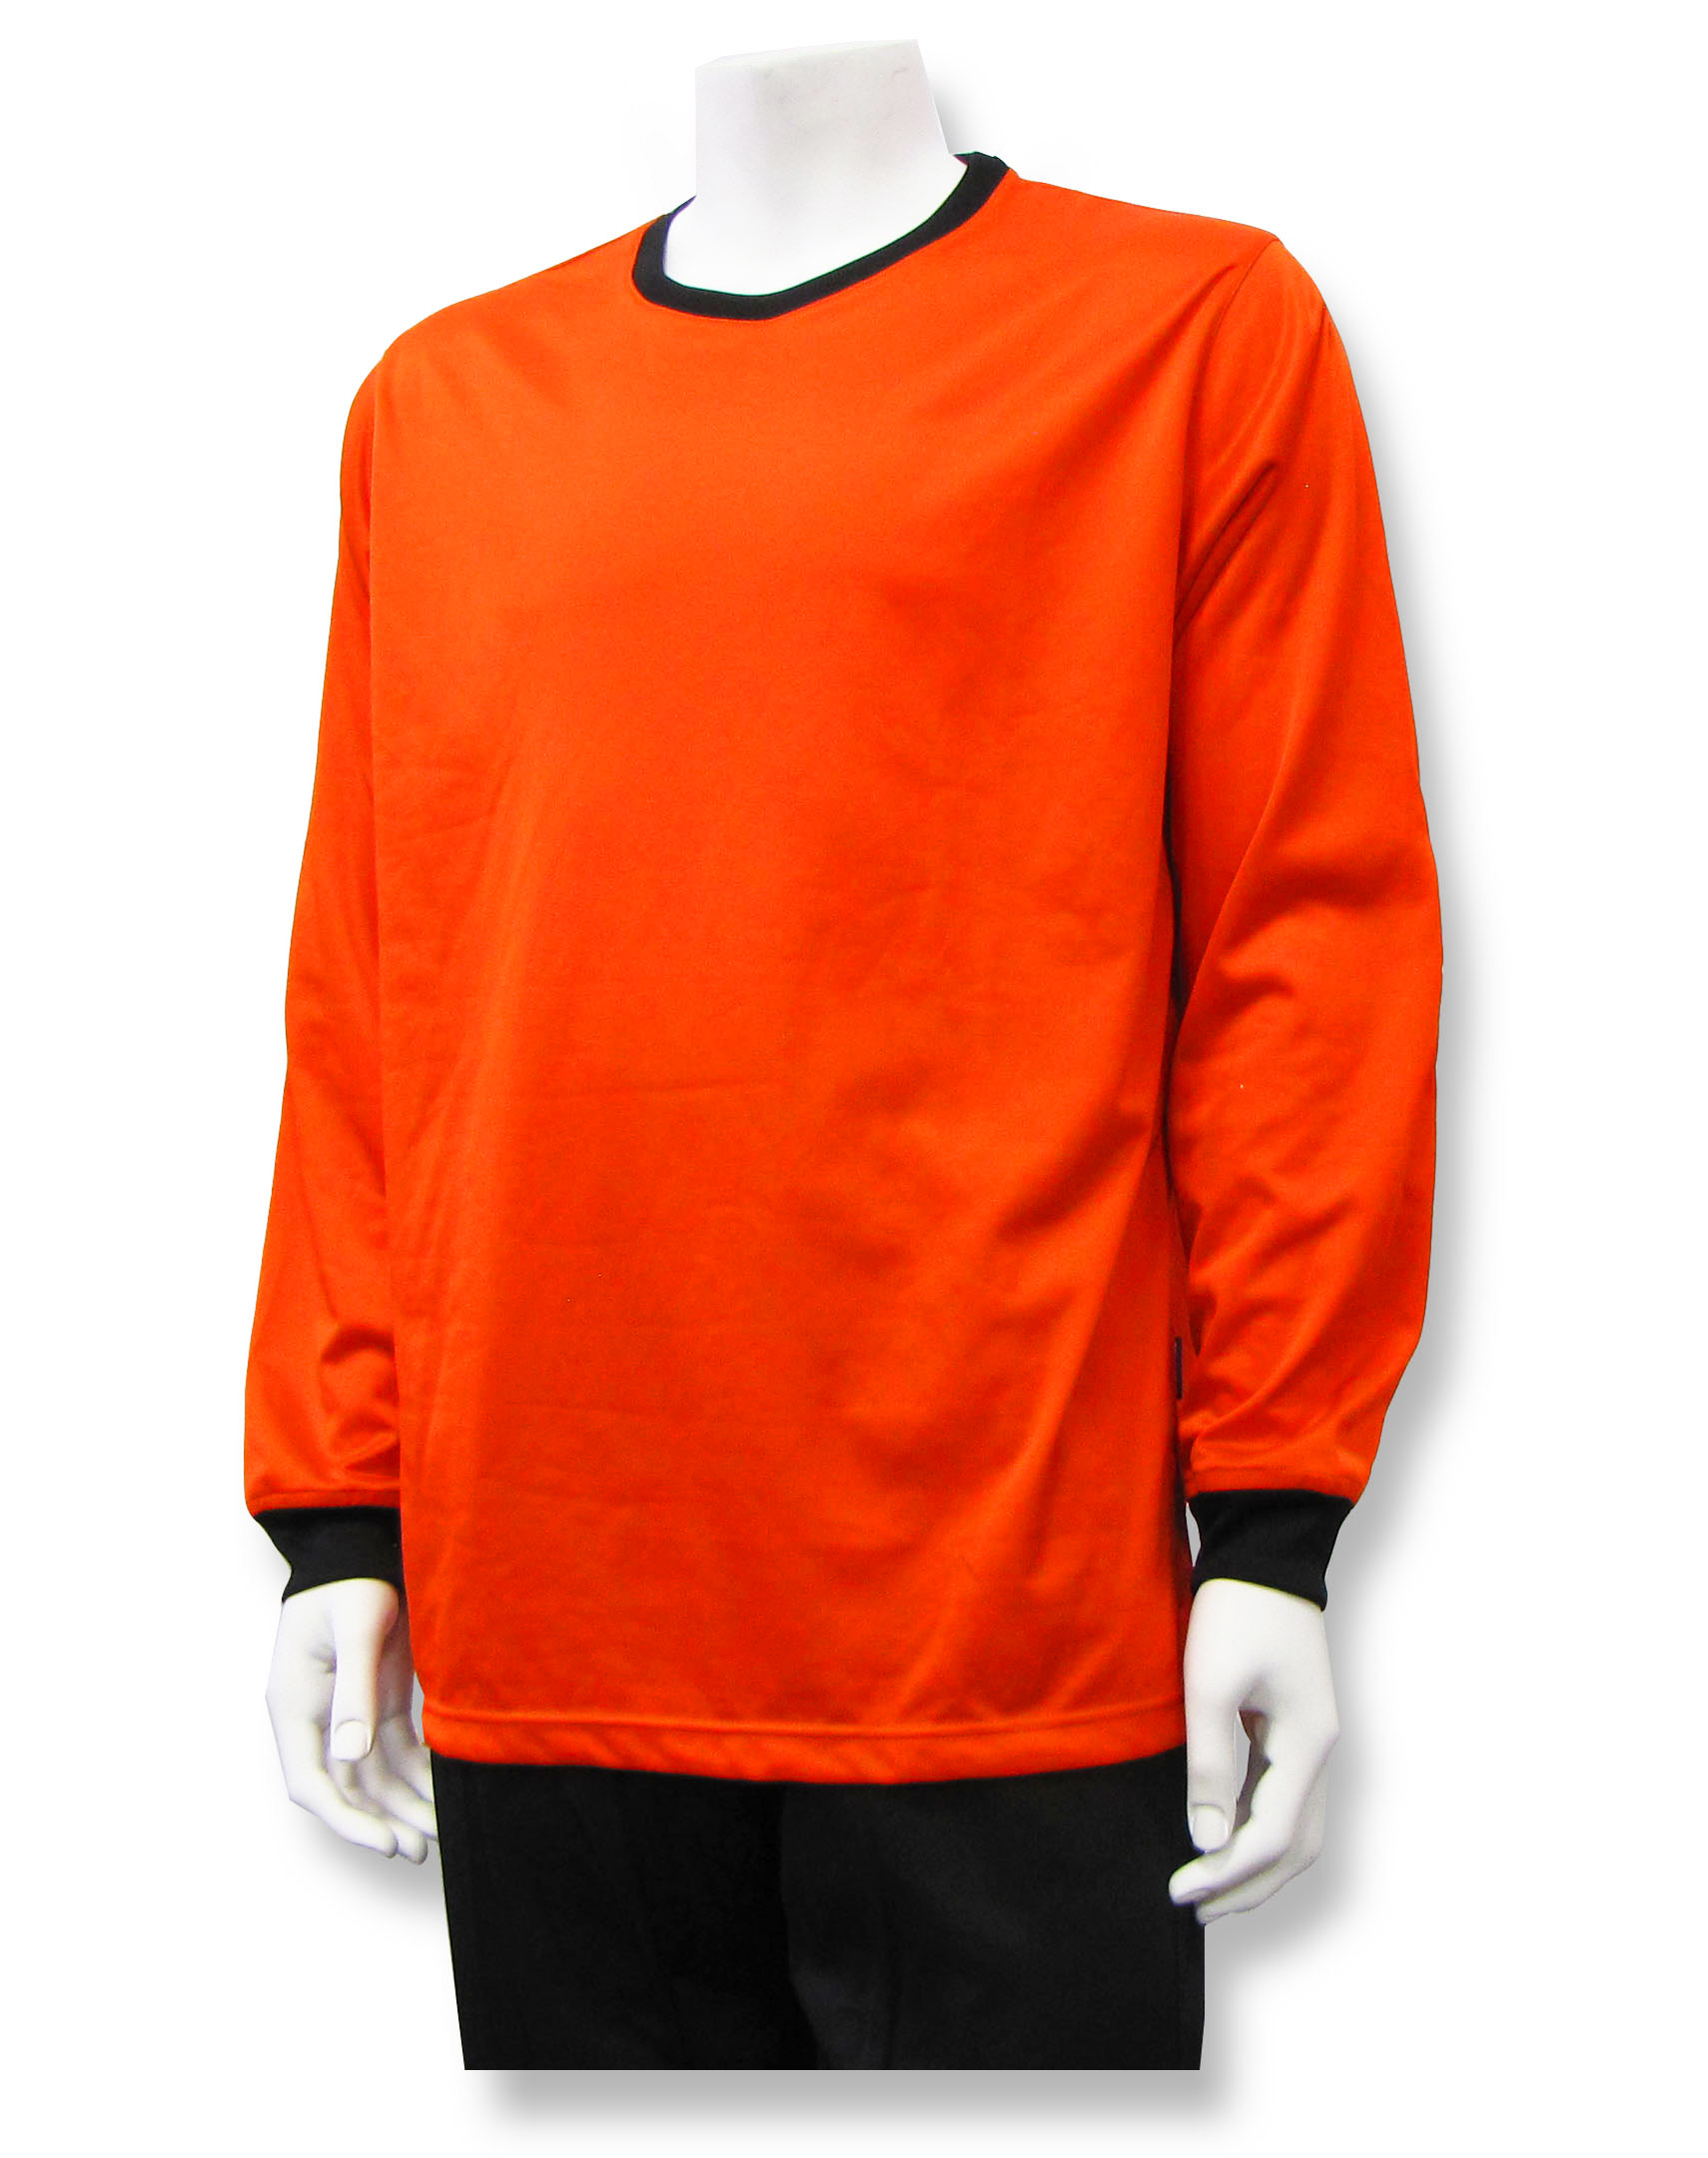 Long sleeve soccer goalie jersey in orange by Code Four Athletics